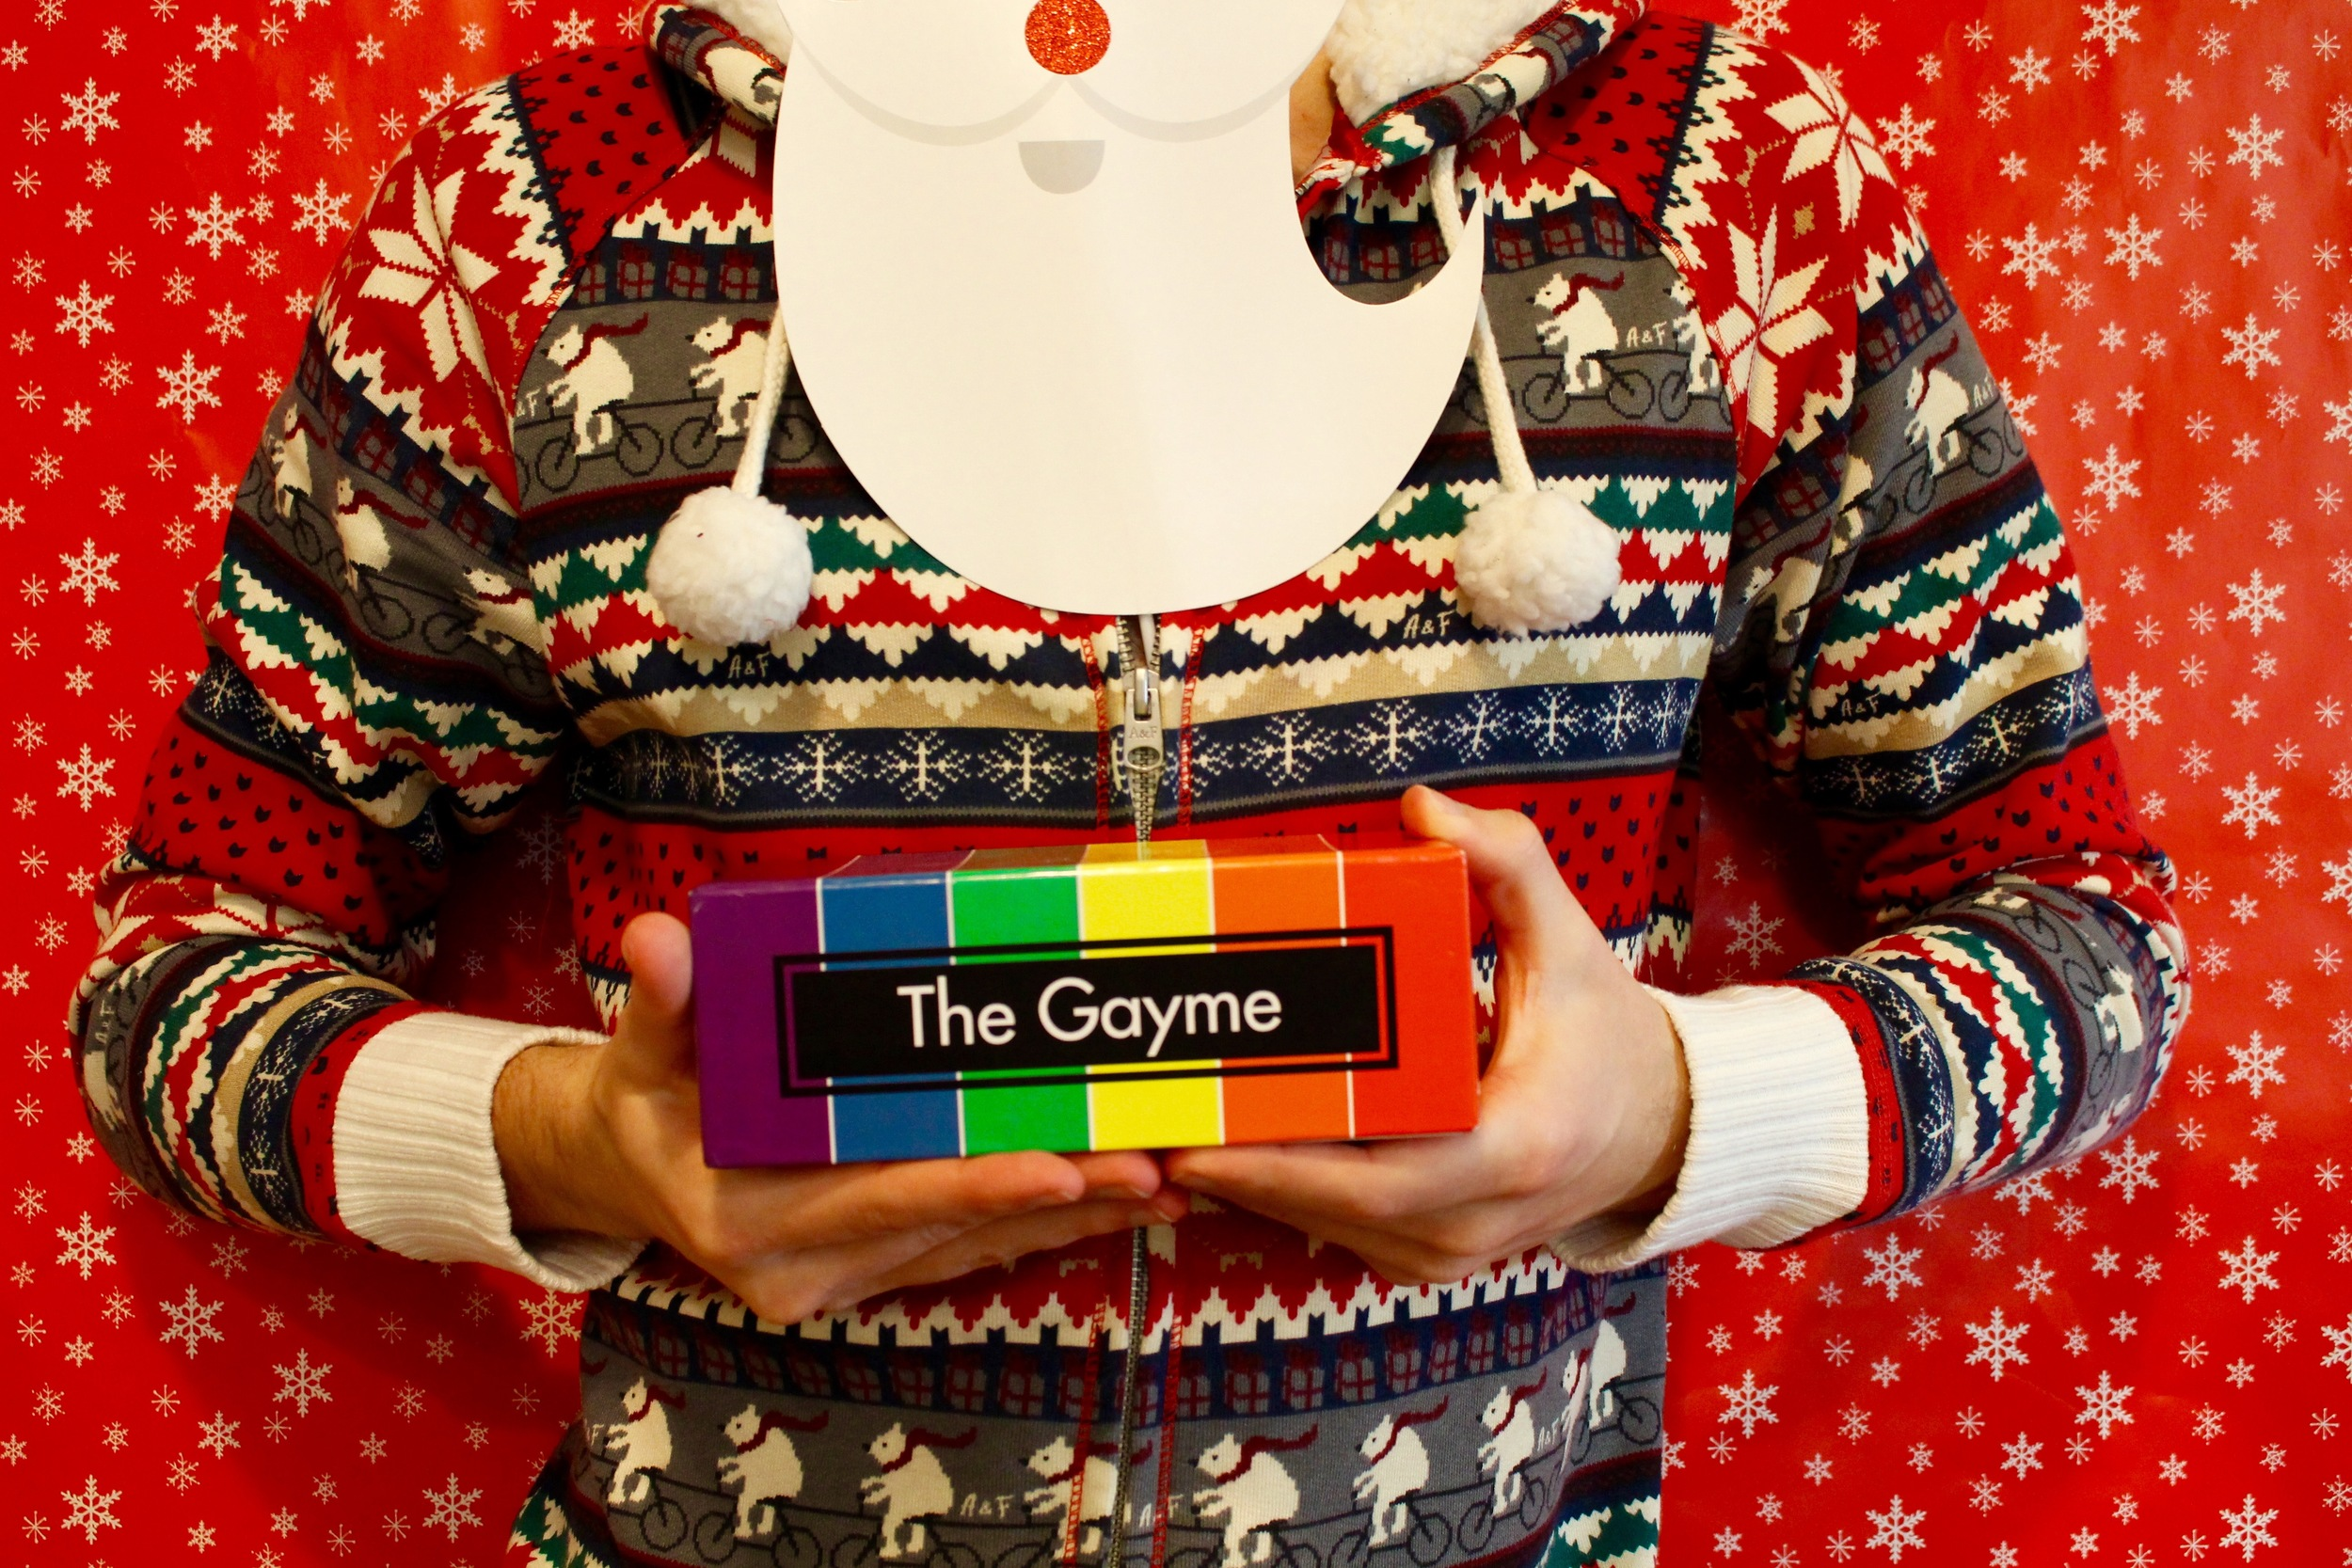 Santa Loves The Gayme